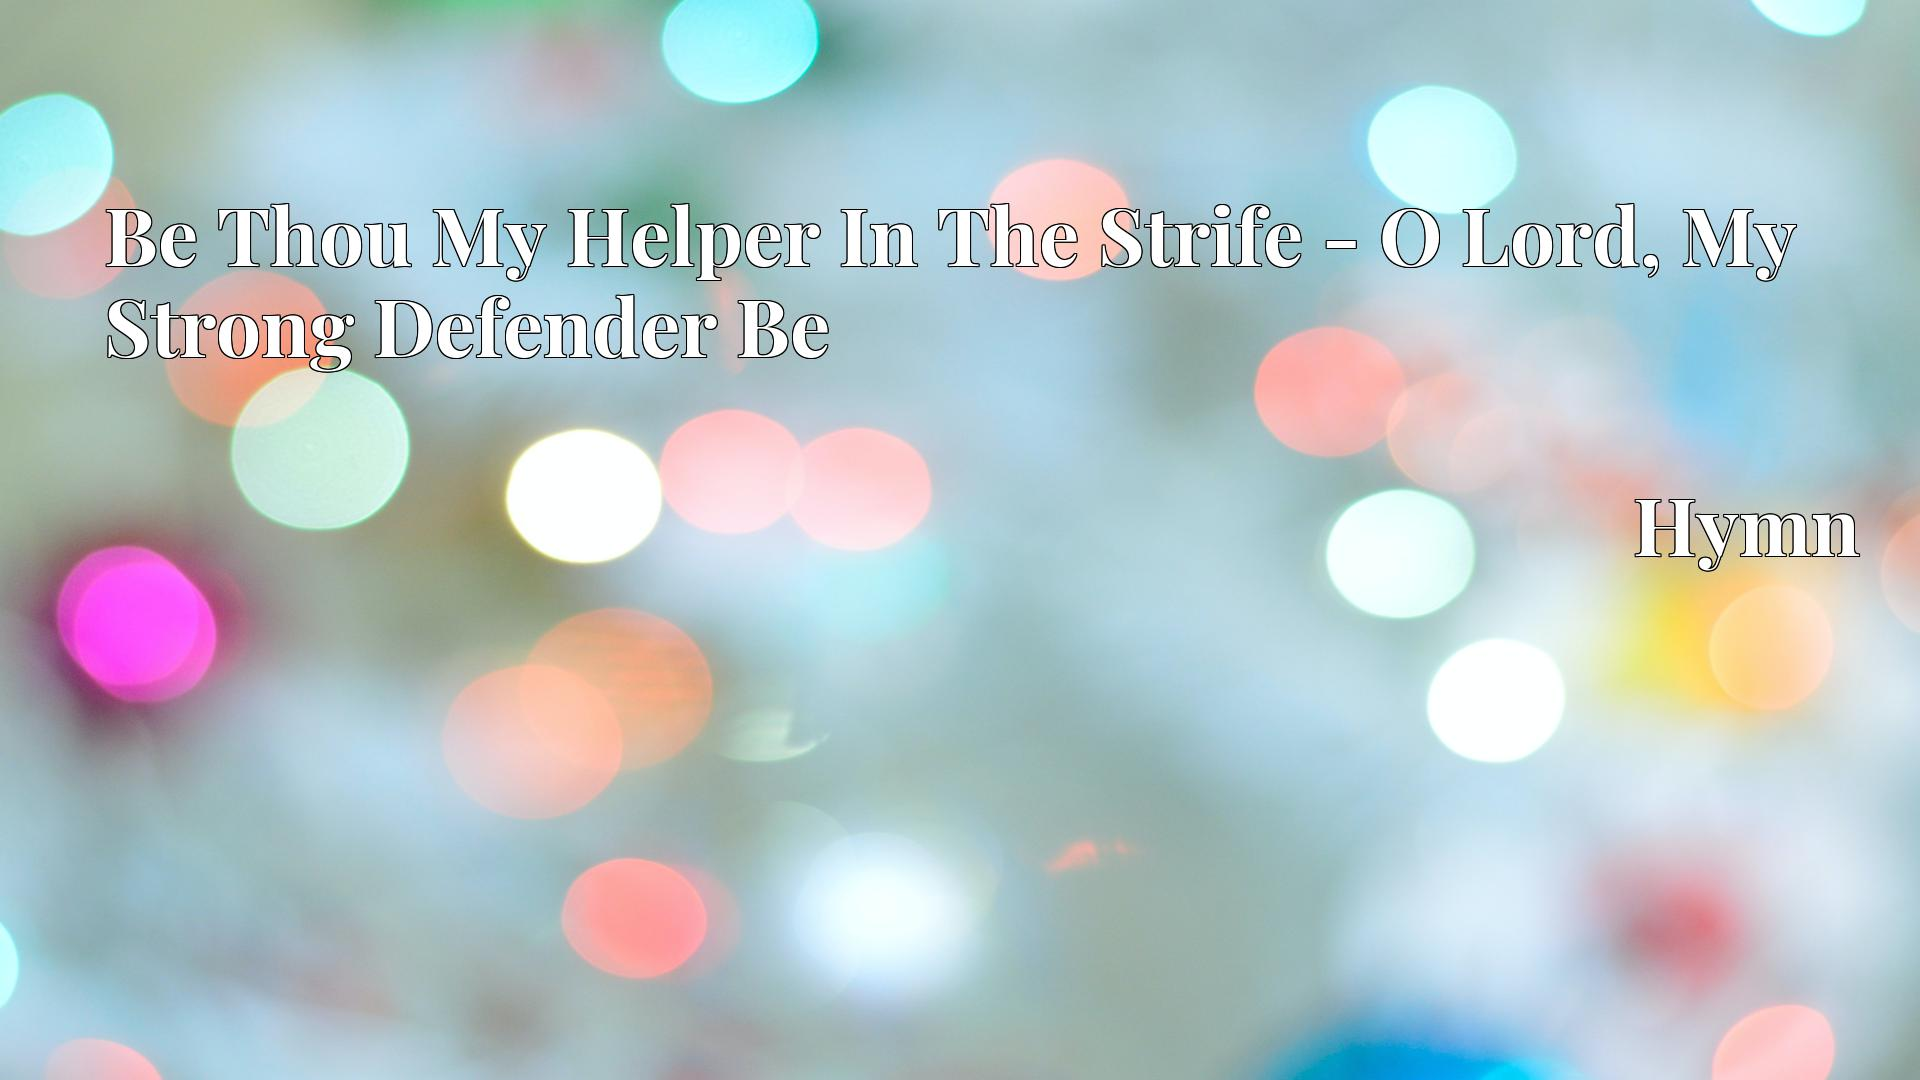 Be Thou My Helper In The Strife - O Lord, My Strong Defender Be - Hymn